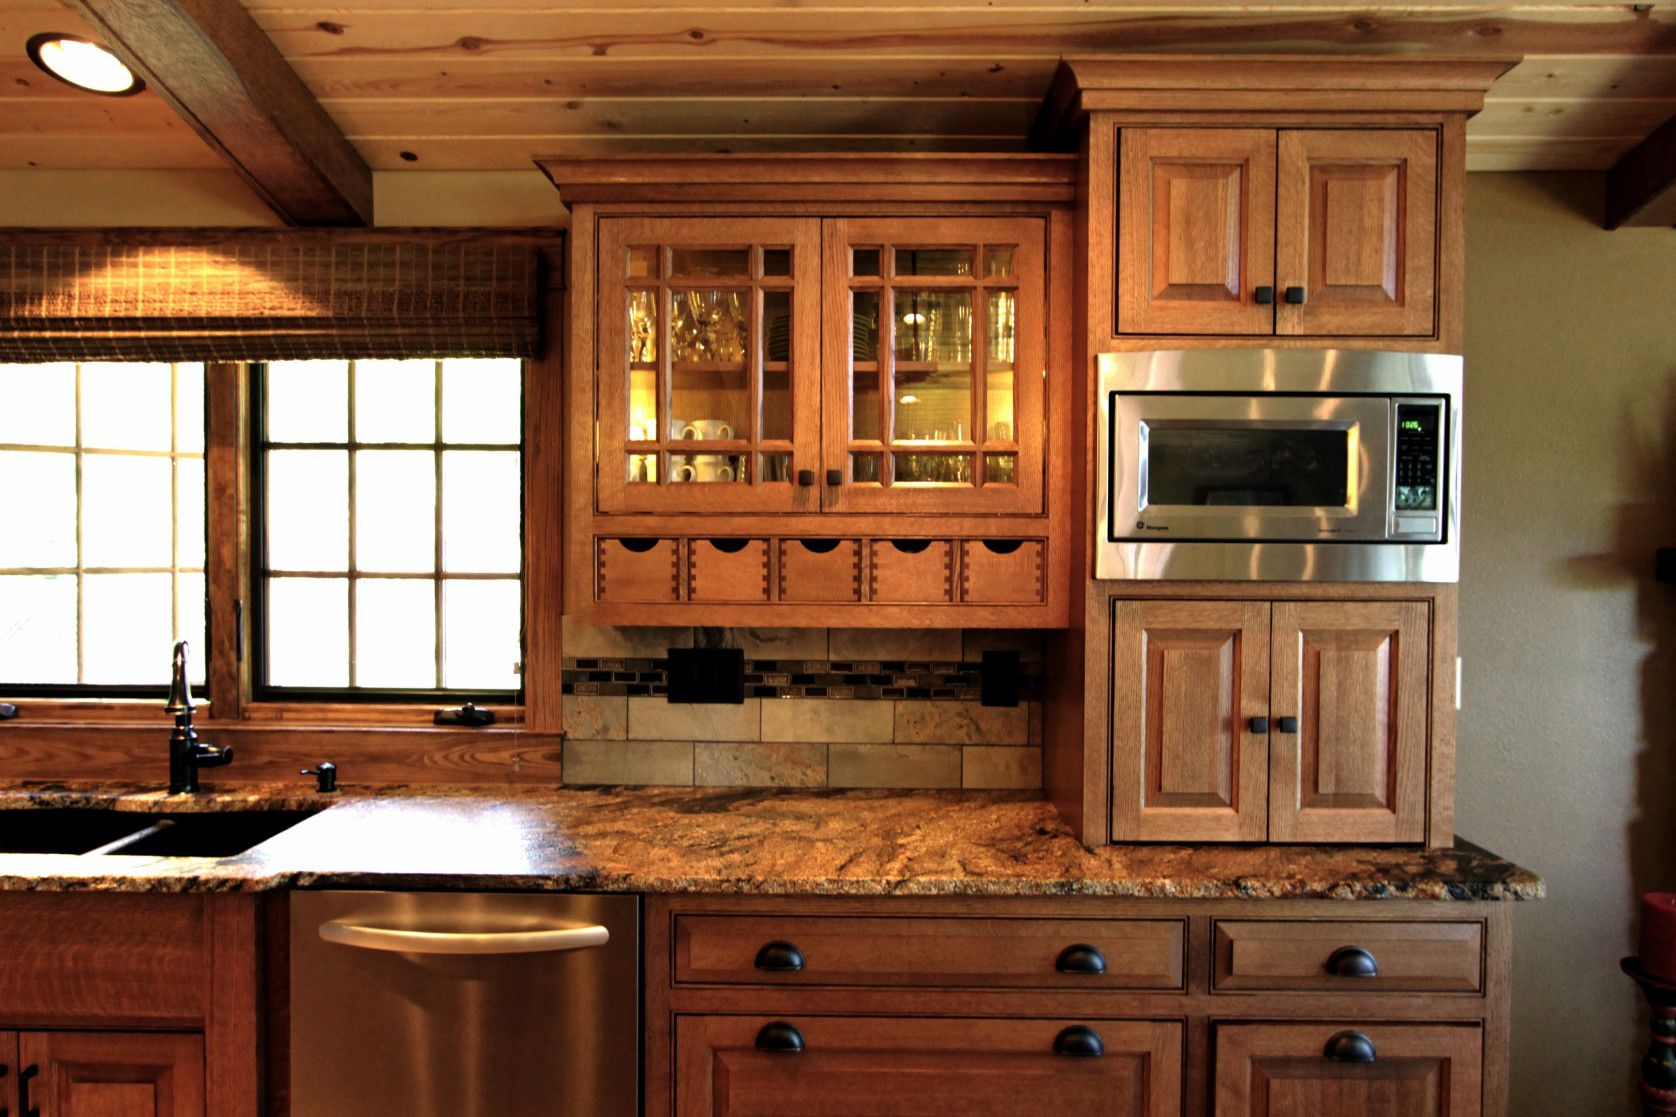 Delicieux 2019 Red Oak Cabinet Doors   Chalkboard Ideas For Kitchen Check More At  Http:/